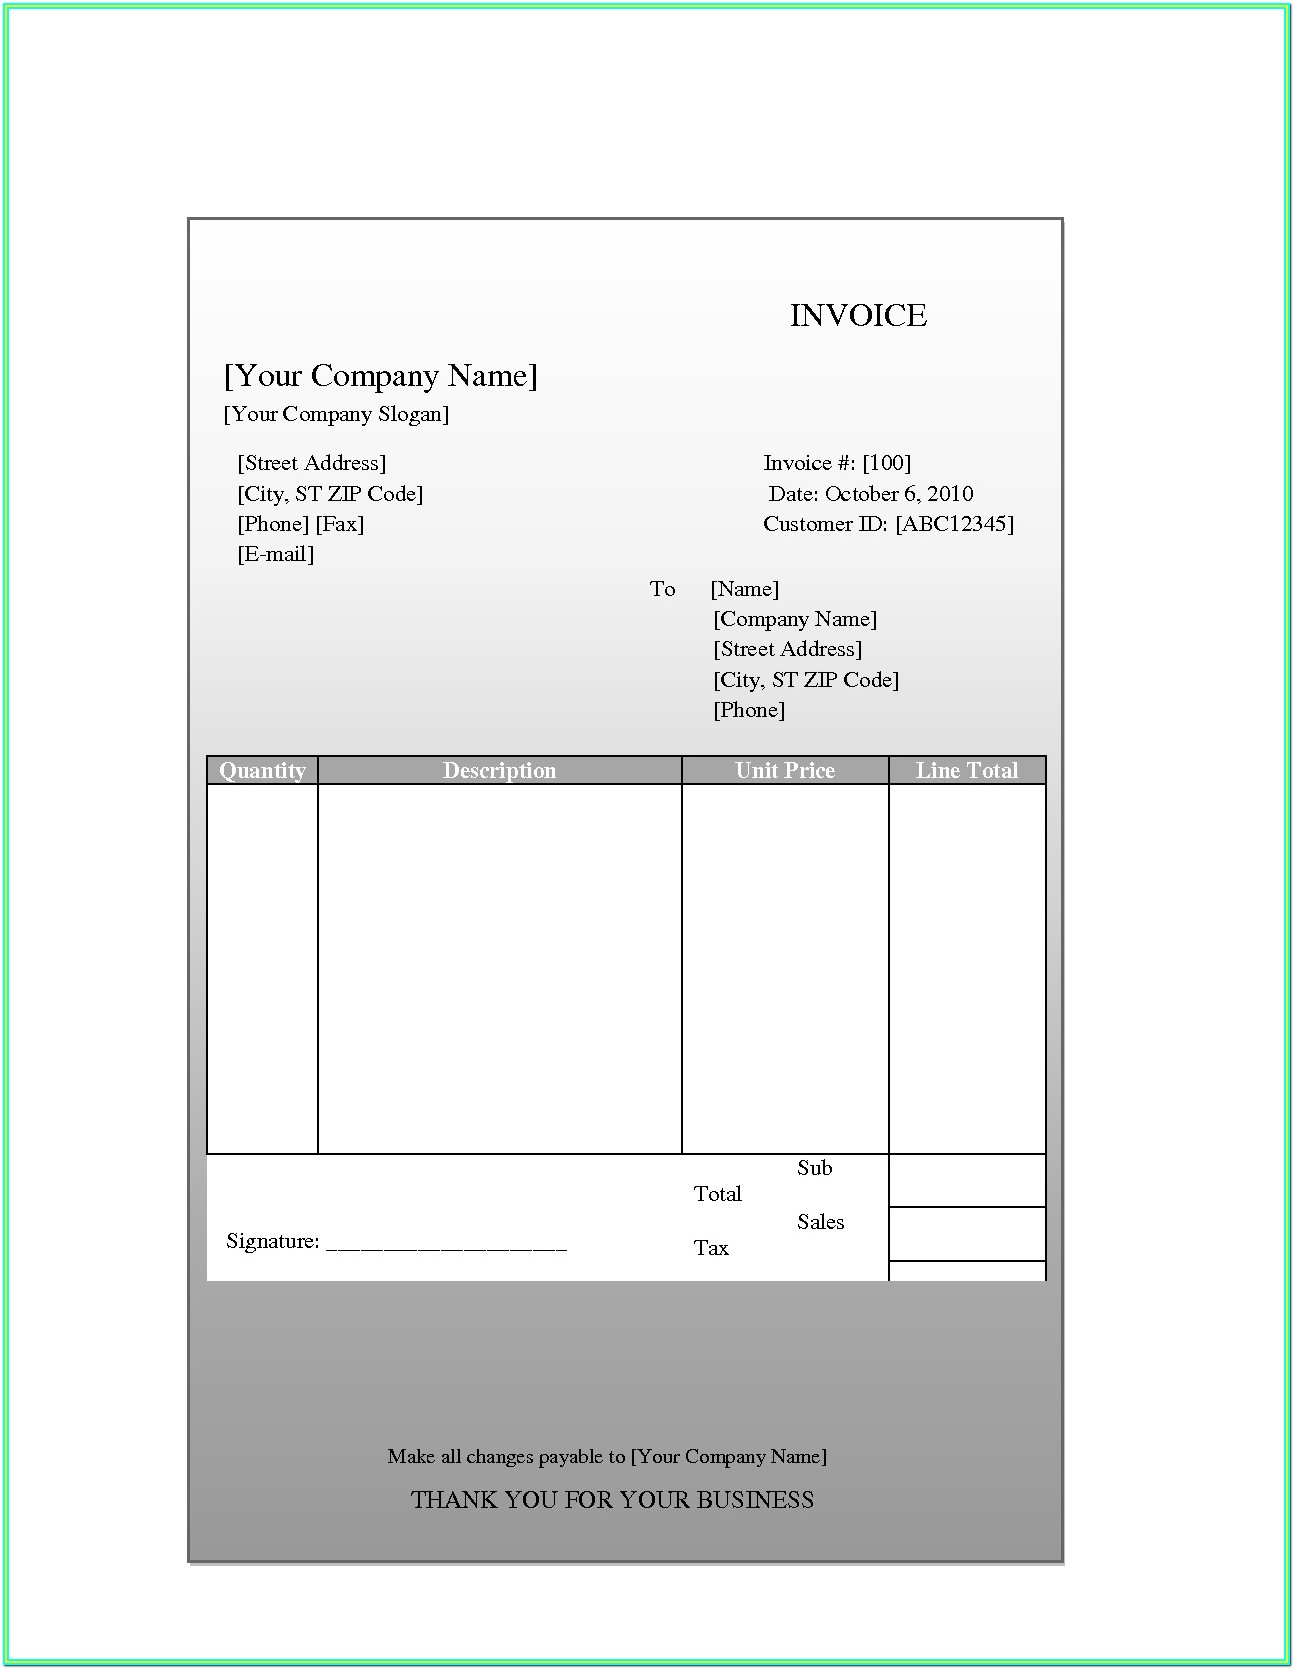 Receipt Free Printable Invoice Forms